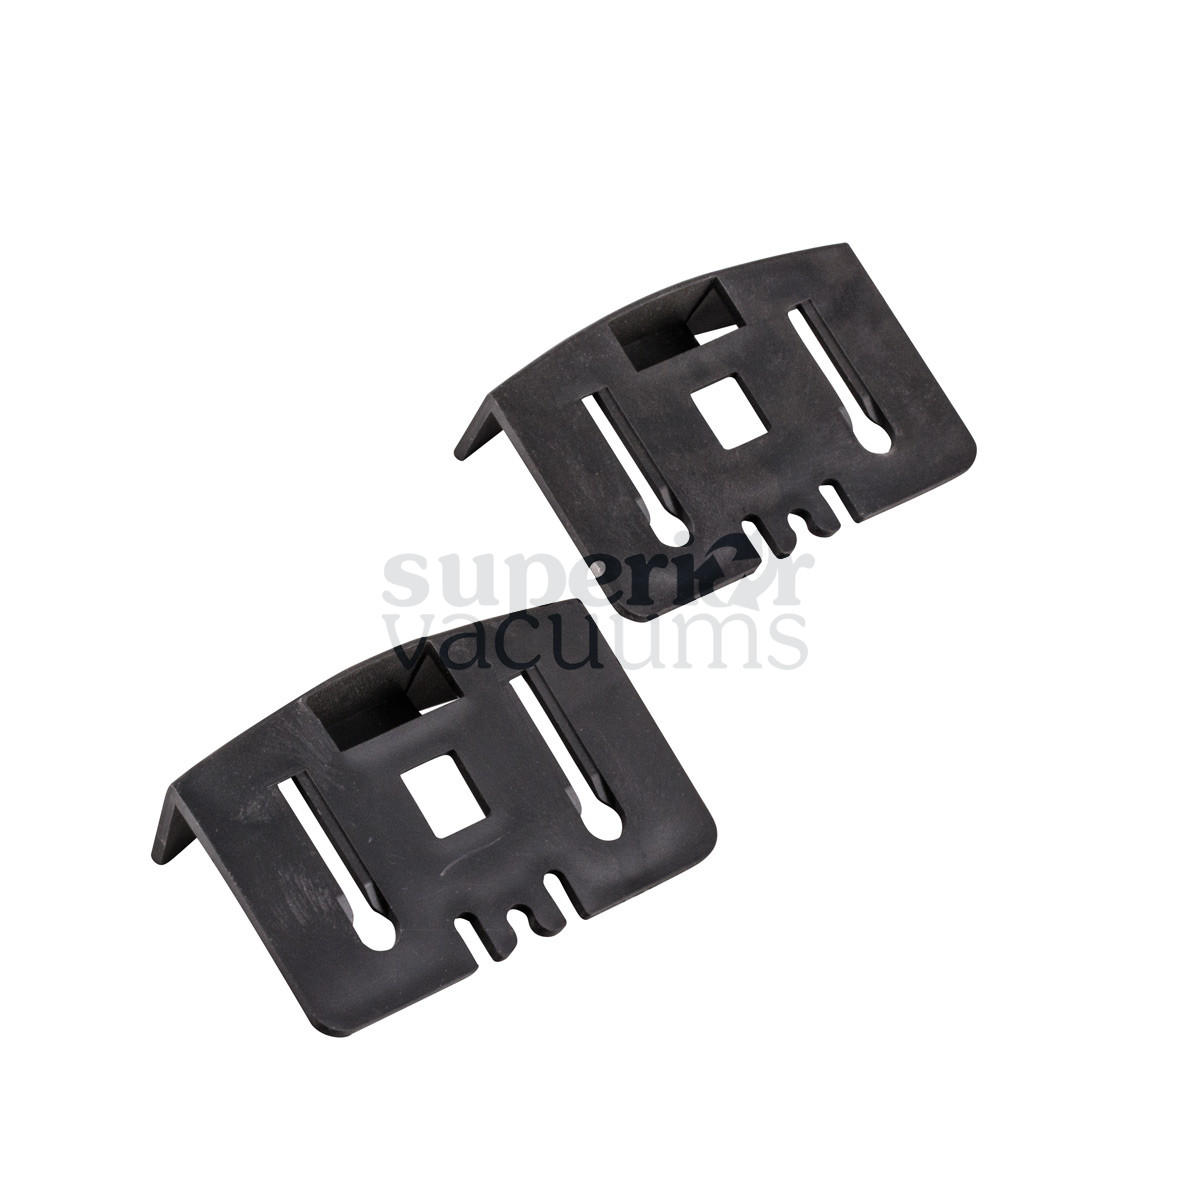 Clips For Quick Clean Dry Commercial Canister Vacuum Vacdcc200 1 Pair Numatic Nace Henry Hetty James Harry